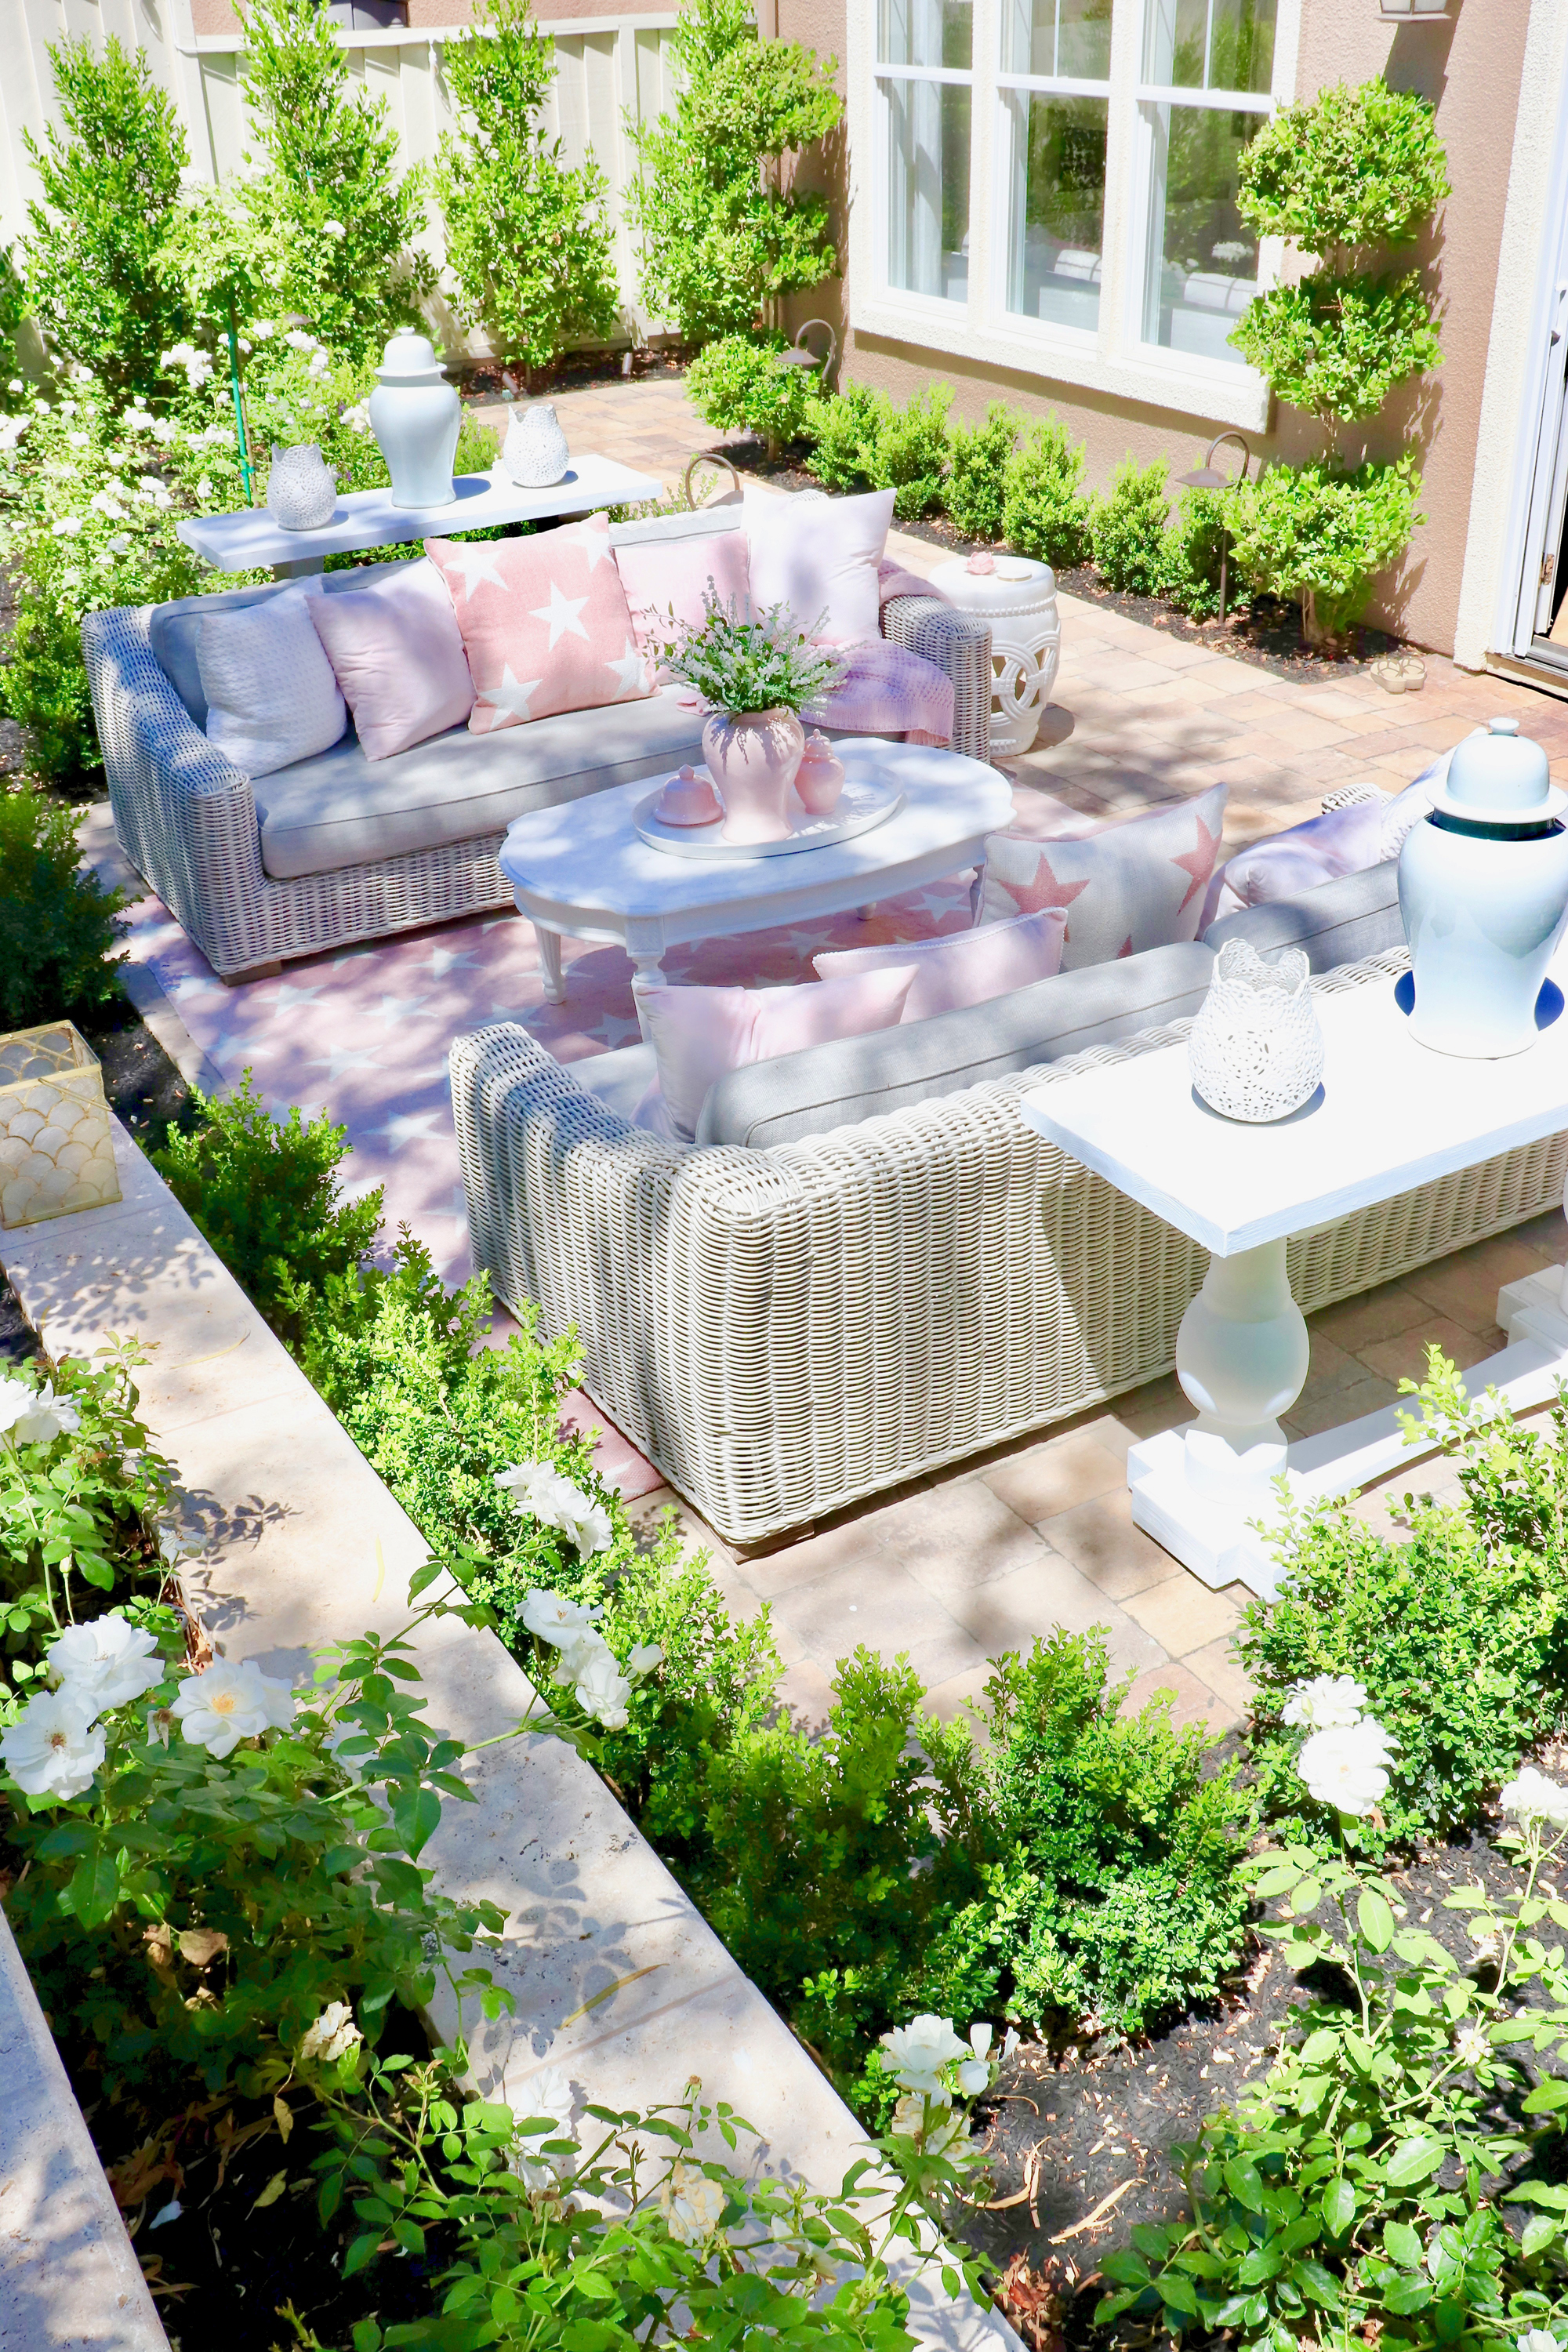 Wondrous Restoration Hardware Outdoor Furniture Review Kristy Wicks Forskolin Free Trial Chair Design Images Forskolin Free Trialorg